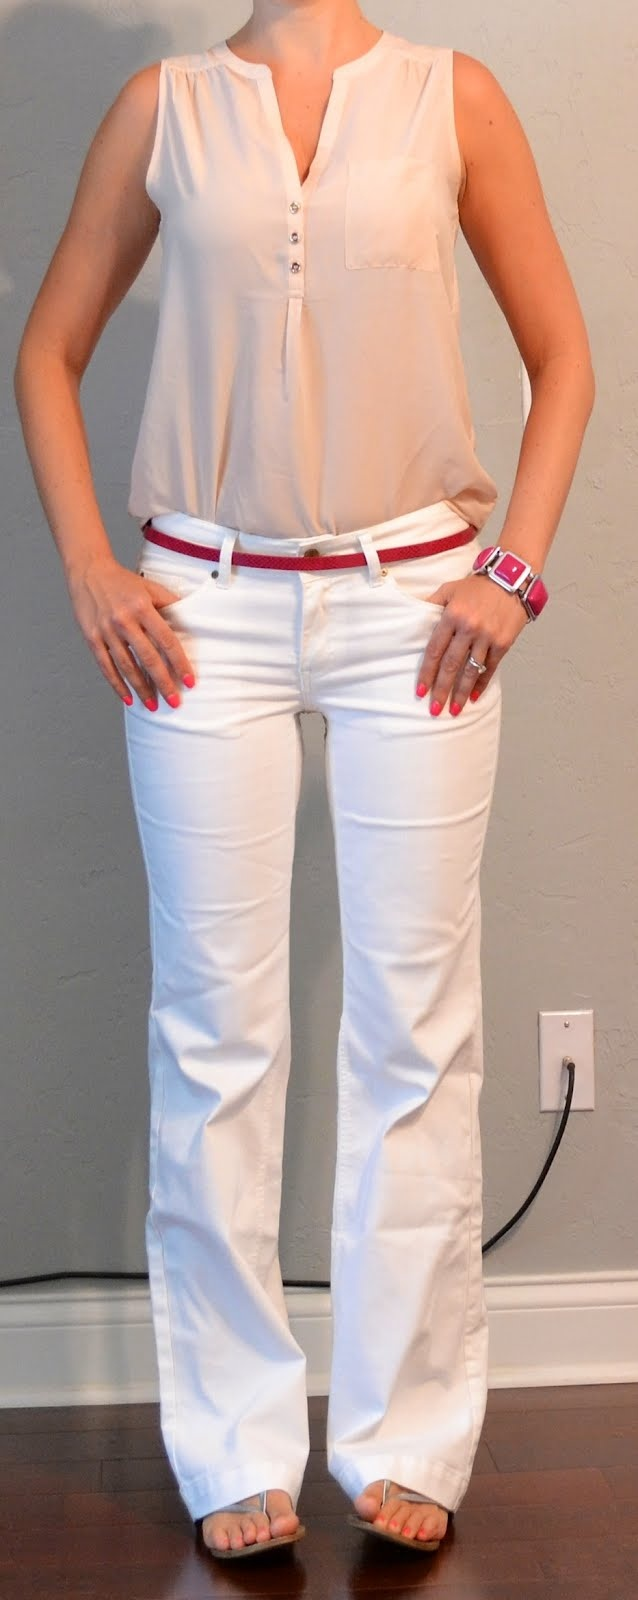 outfit posts: nude sleeveless blouse, white jeans, pink belt | Outfit Posts Dynamic